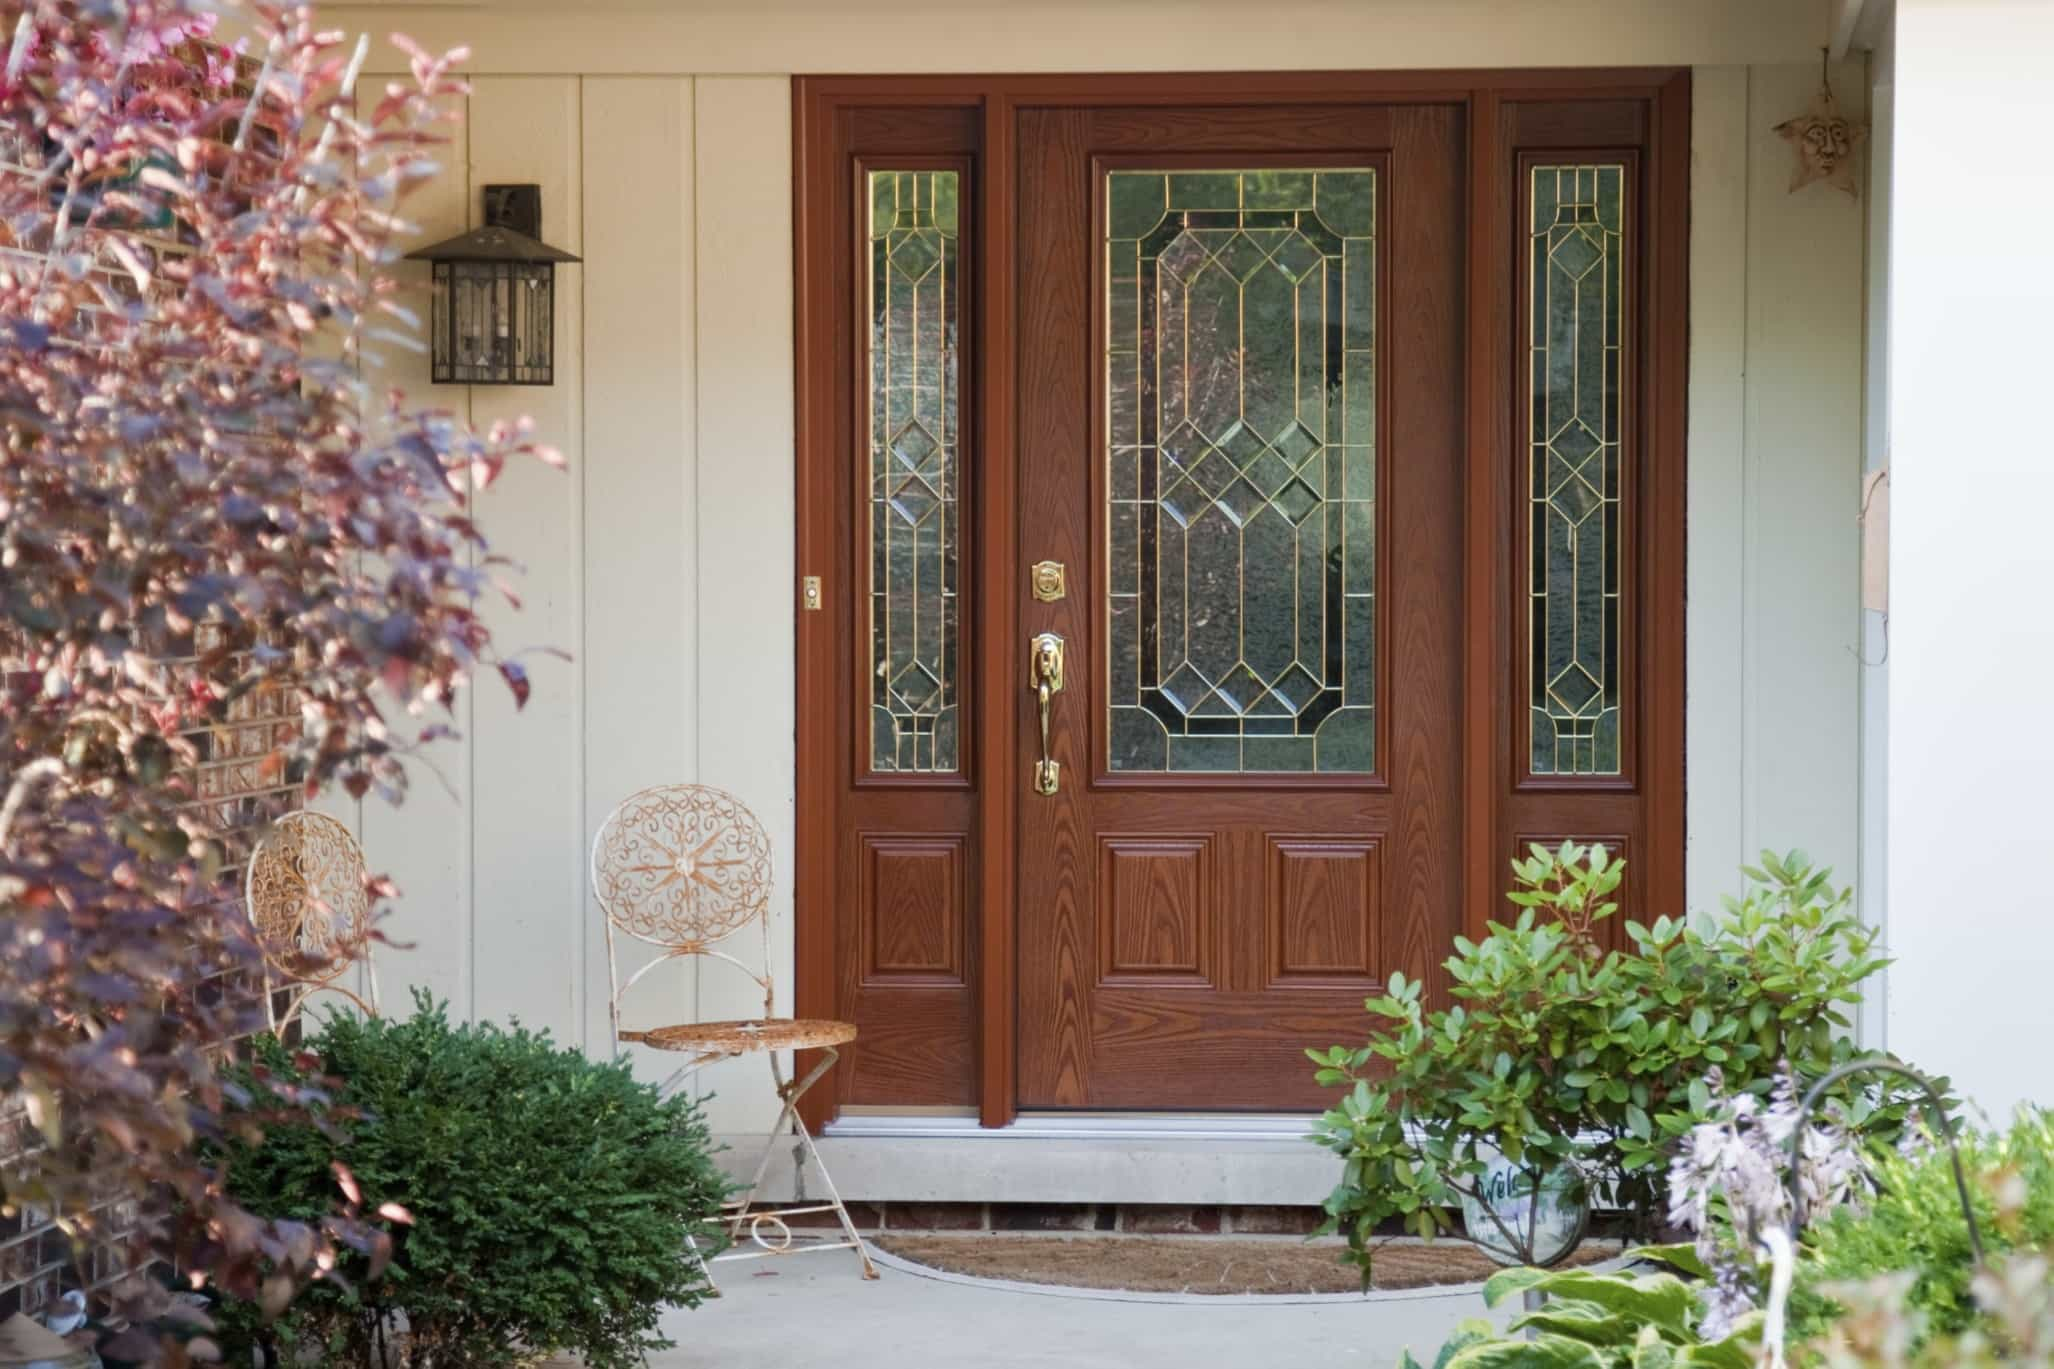 1369 #6B4131 Chicago's Best Fiberglass Entry Doors Sahara Window And Dors picture/photo Fibreglass Entrance Doors 41392054